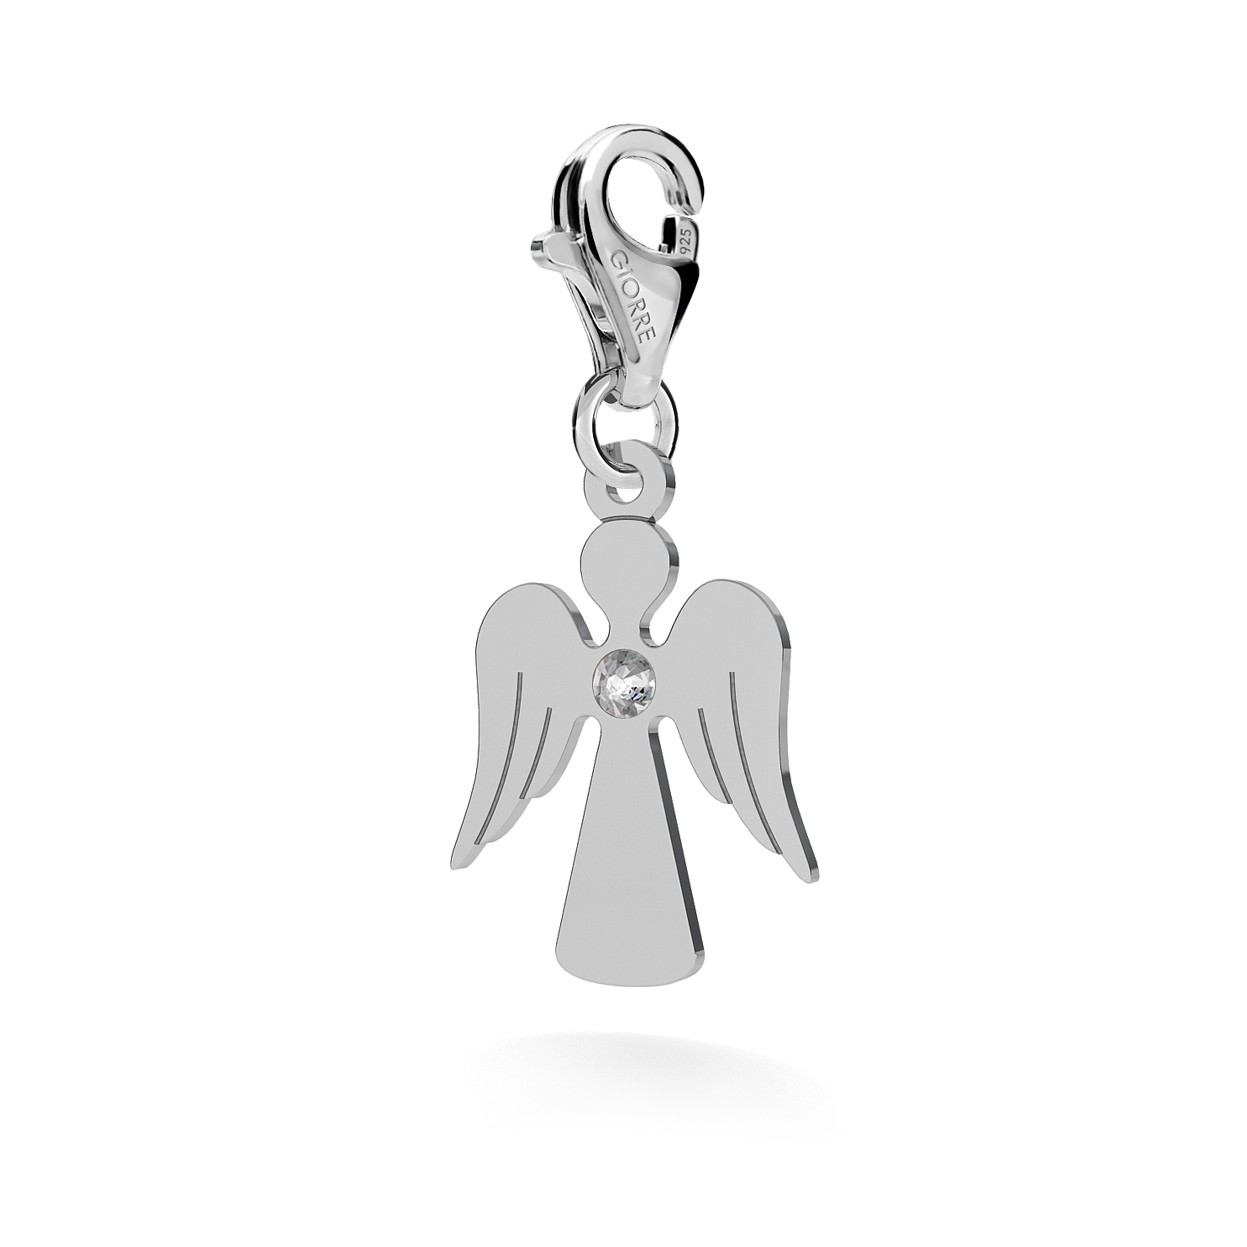 CHARM 96, ANGEL, SWAROVSKI 2038 SS 6, STERLING SILVER (925) RHODIUM OR GOLD PLATED